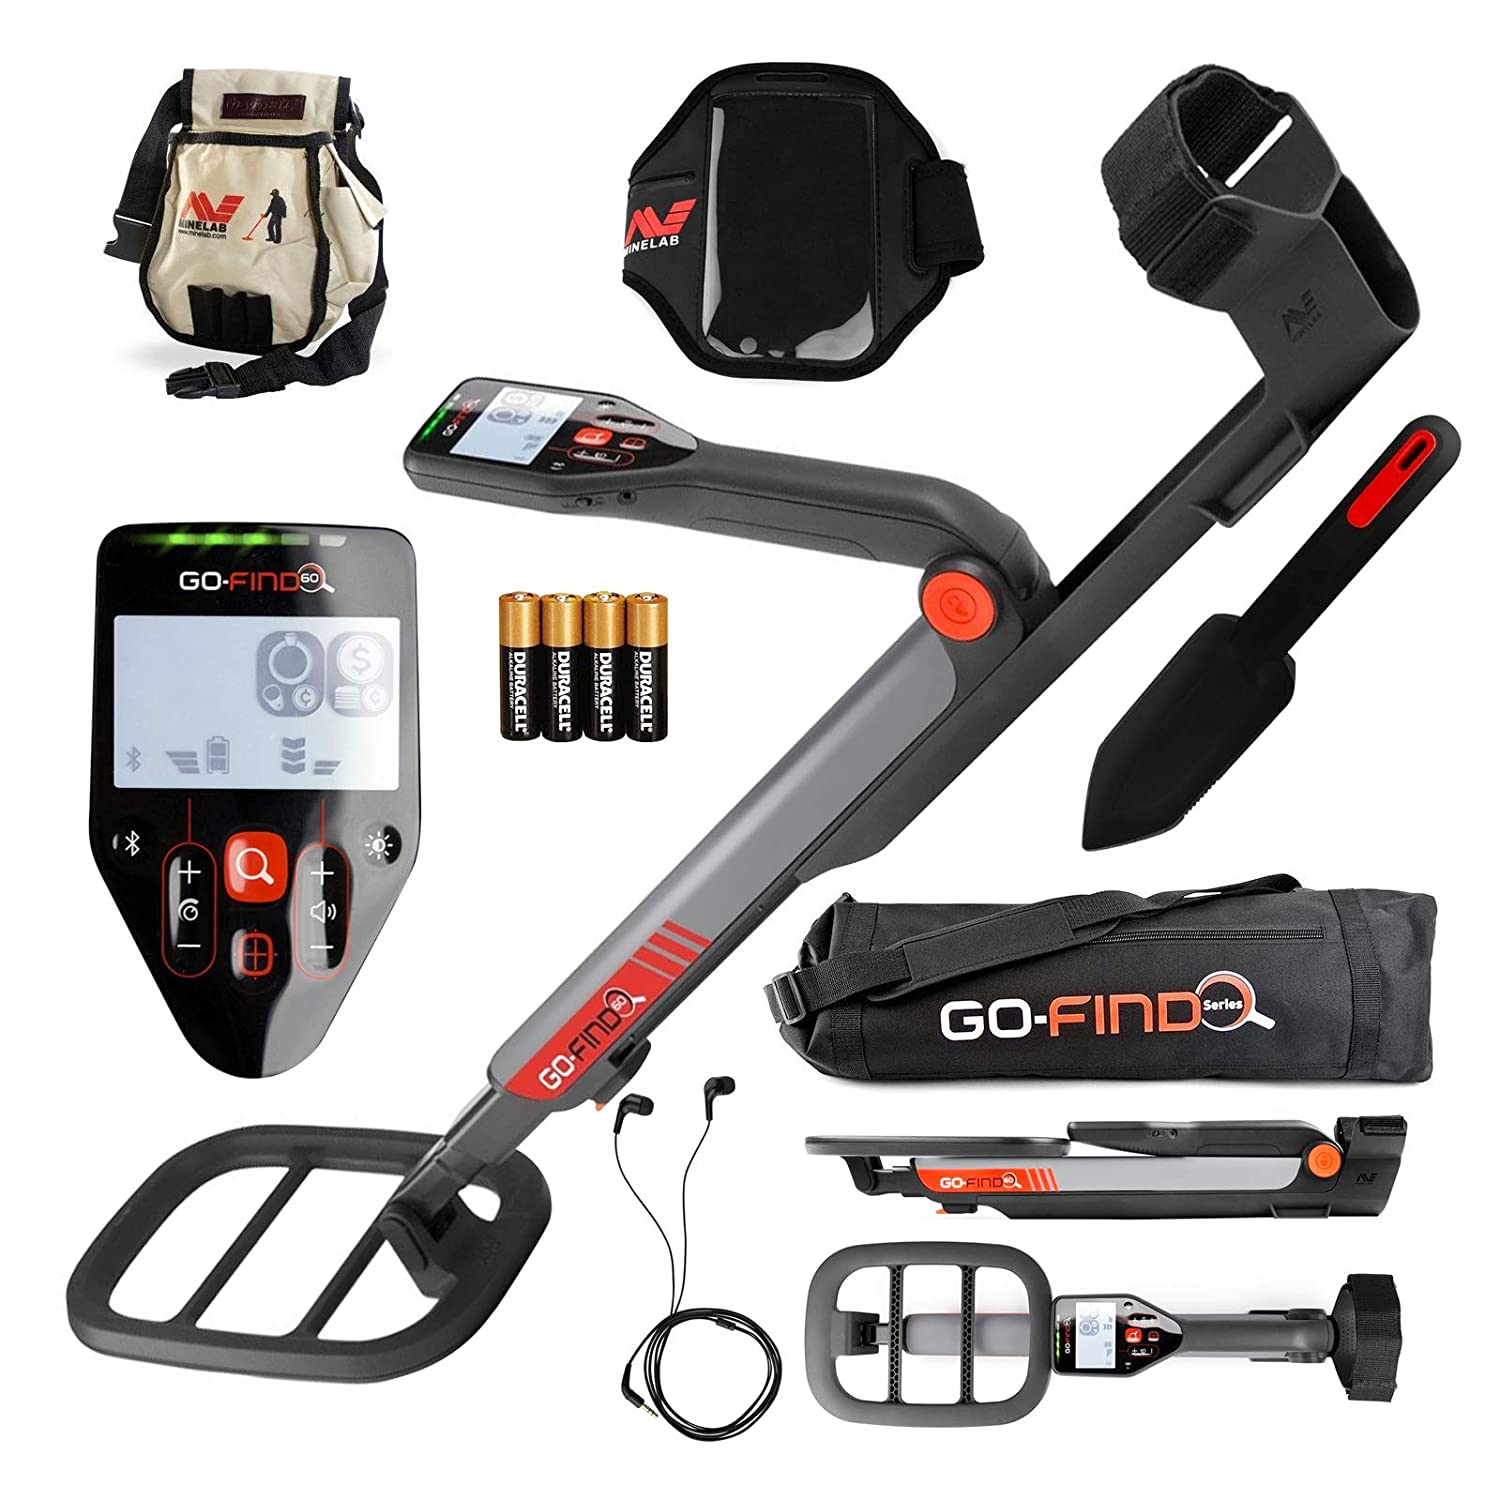 Amazon.com : Minelab GO-FIND 60 Detector with Carry Bag, FindsPouch, Trowel, Smart Phone Holder and Earbuds : Garden & Outdoor